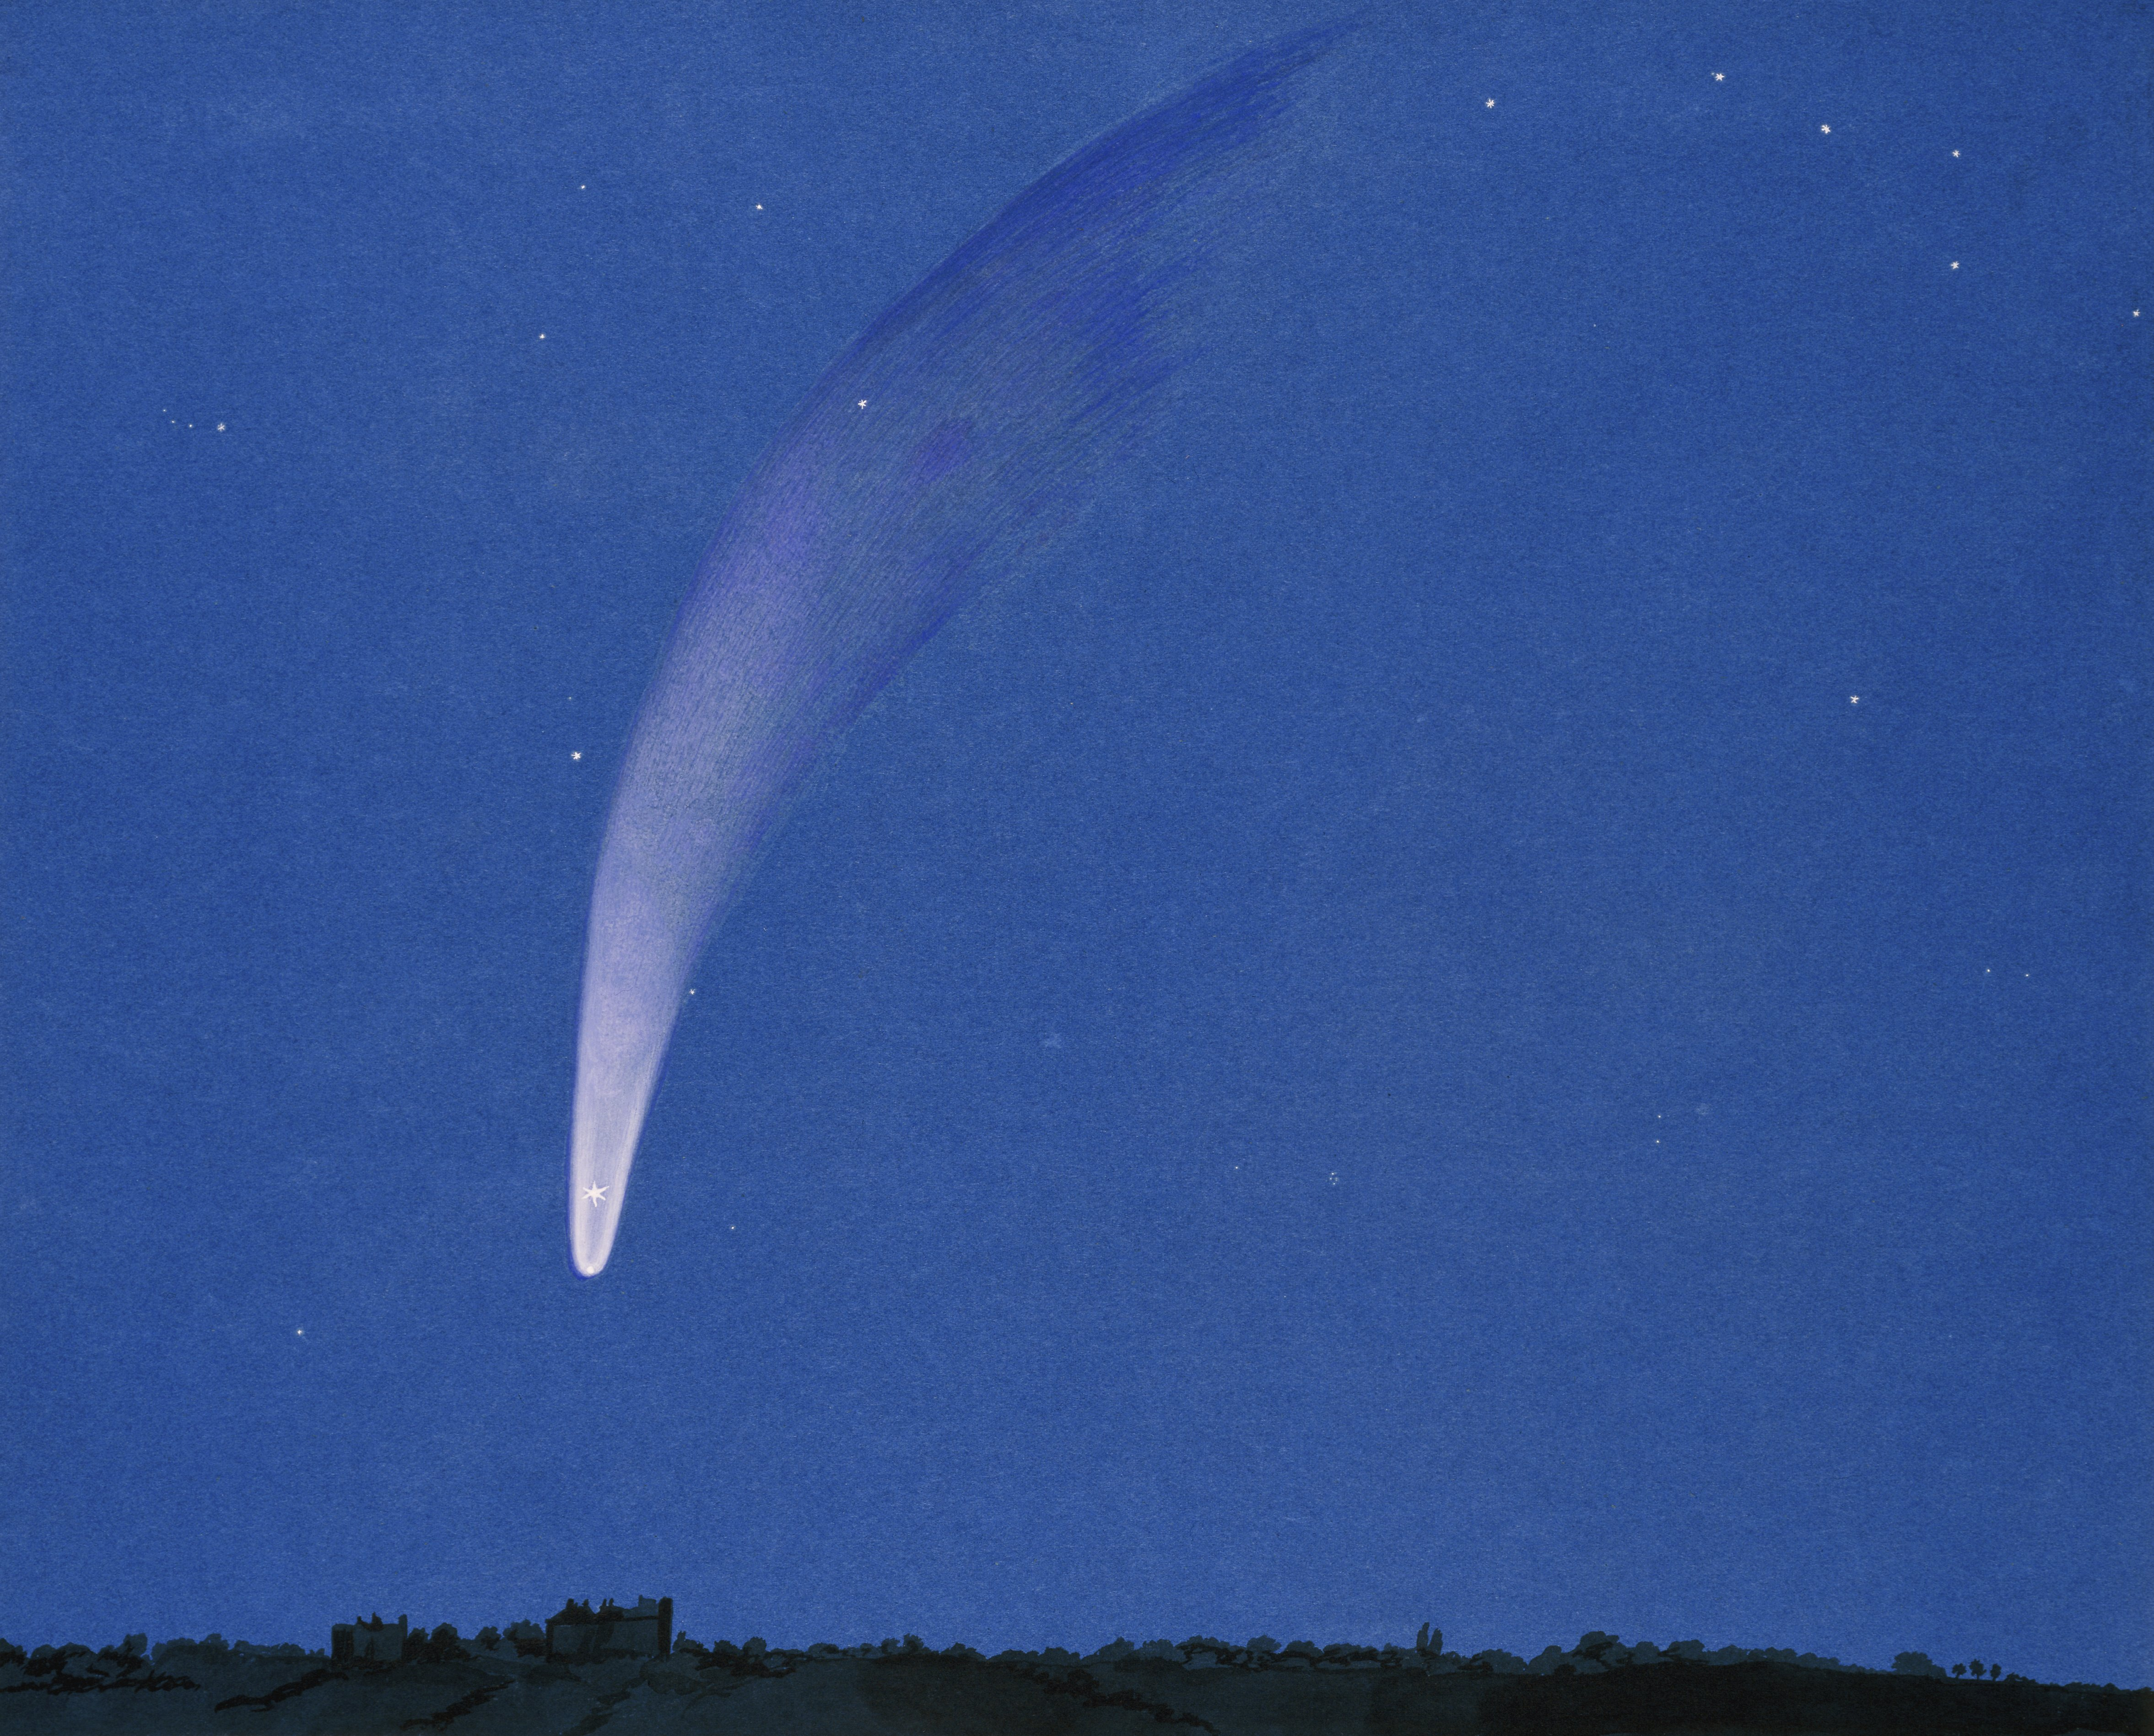 Watercolour painting of Donati's comet by J.W. Griesbach (1858).